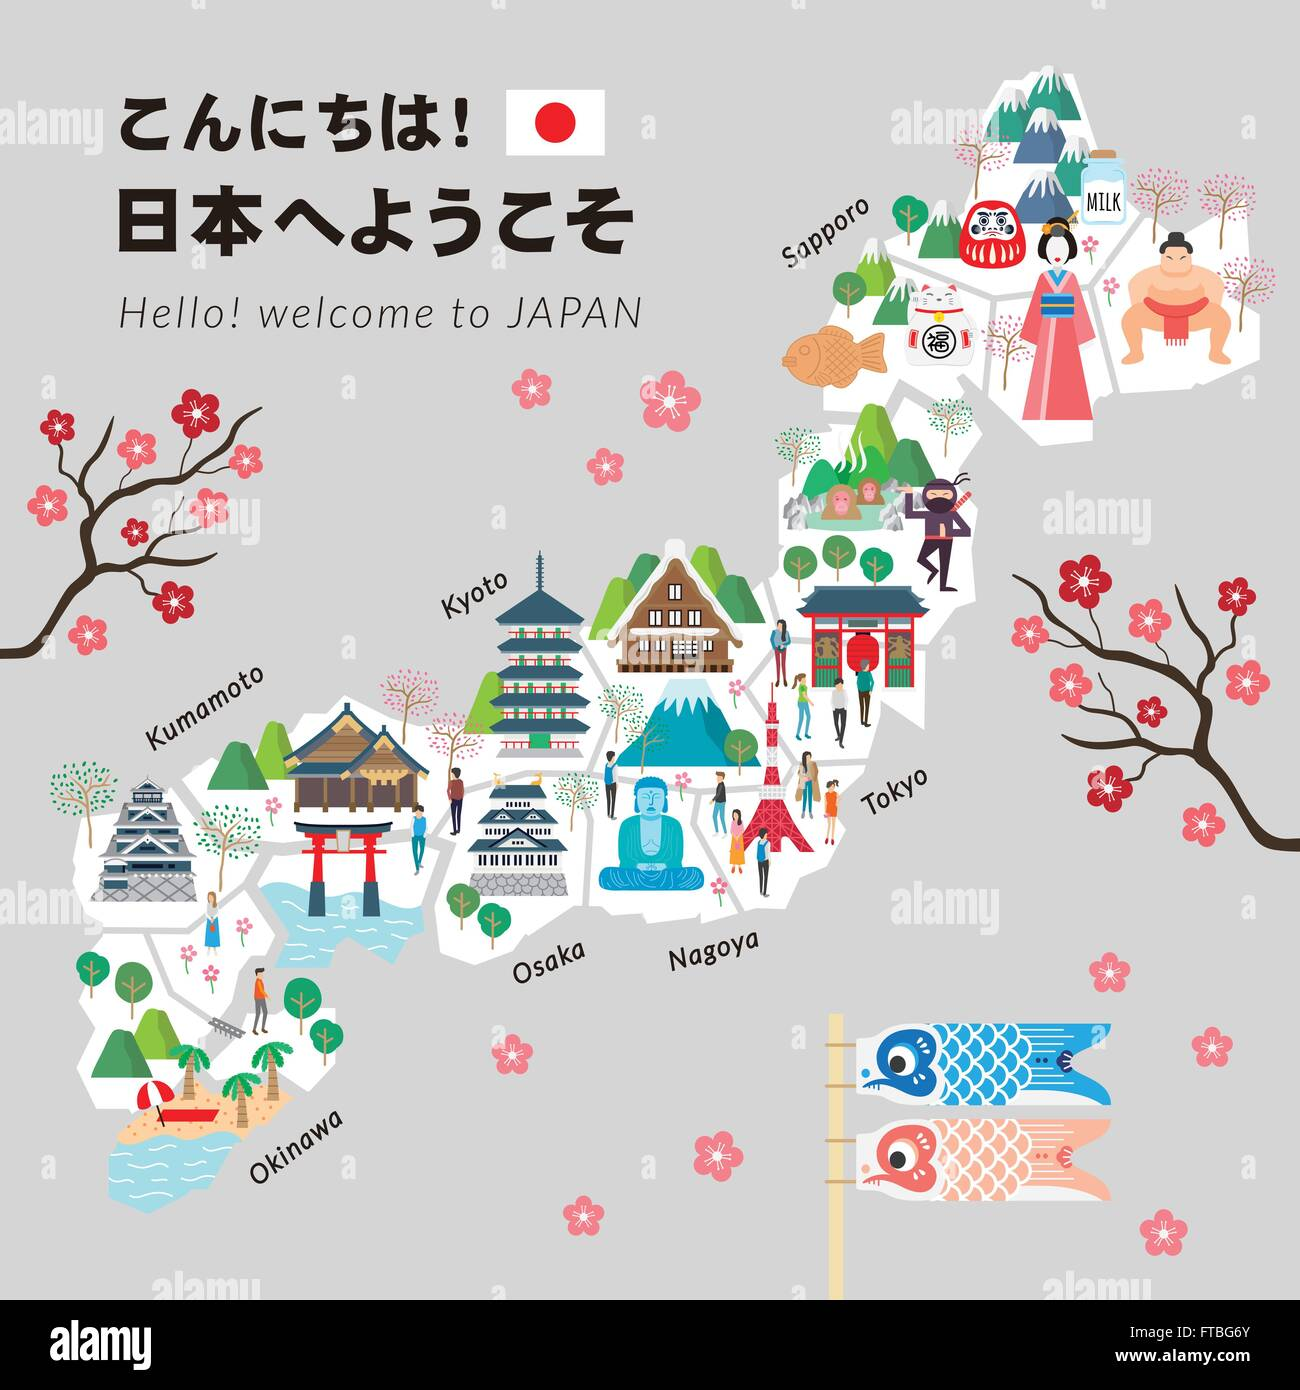 lovely Japan travel map Hello welcome to Japan in Japanese Stock